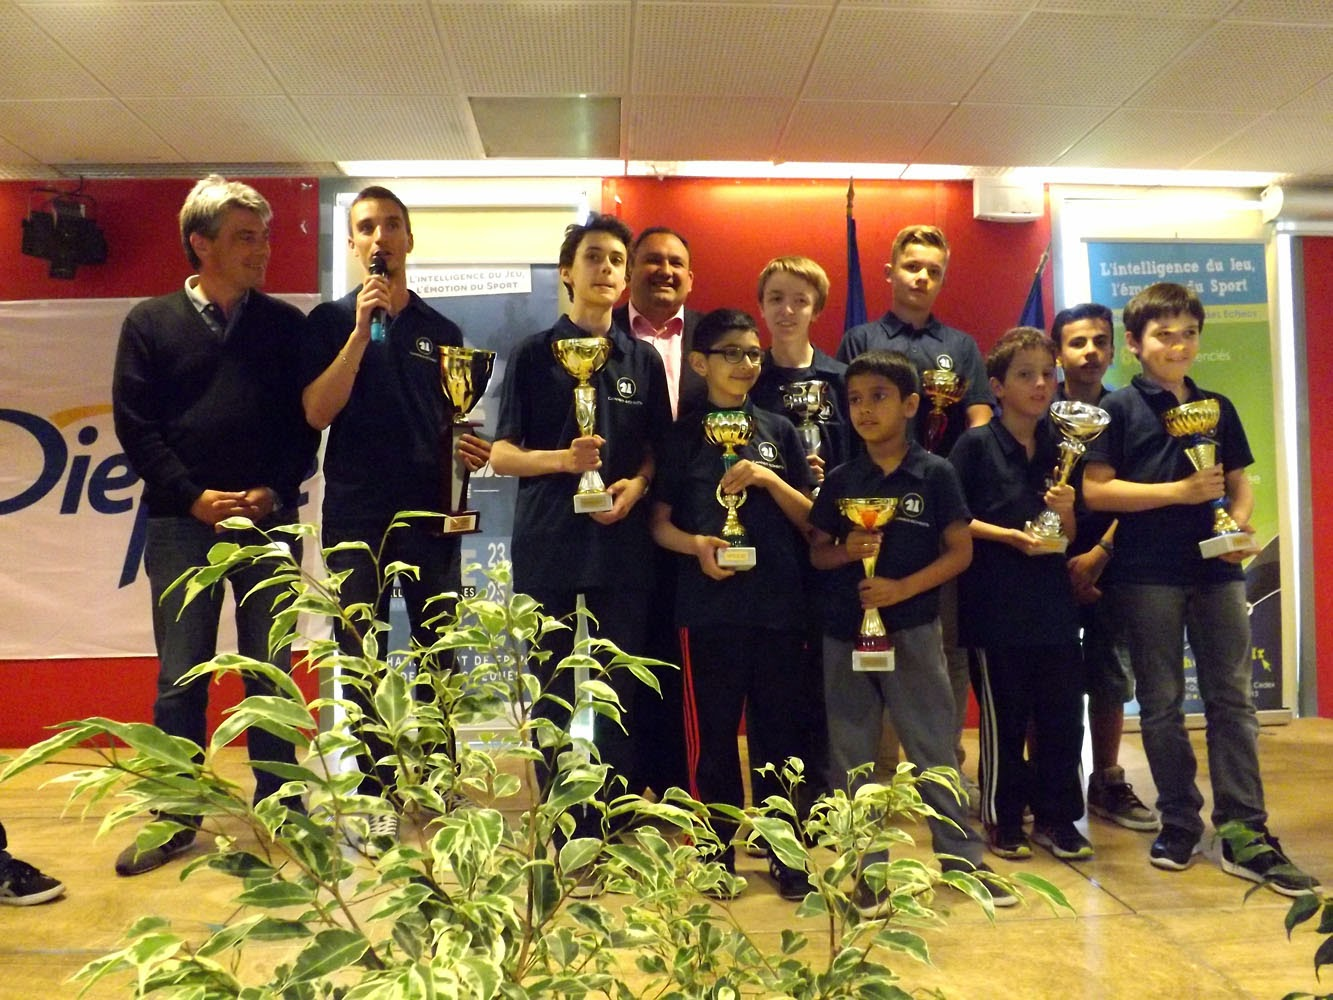 Cannes remporte son 7e titre de champion de France des Clubs Jeunes - Photo © FFE